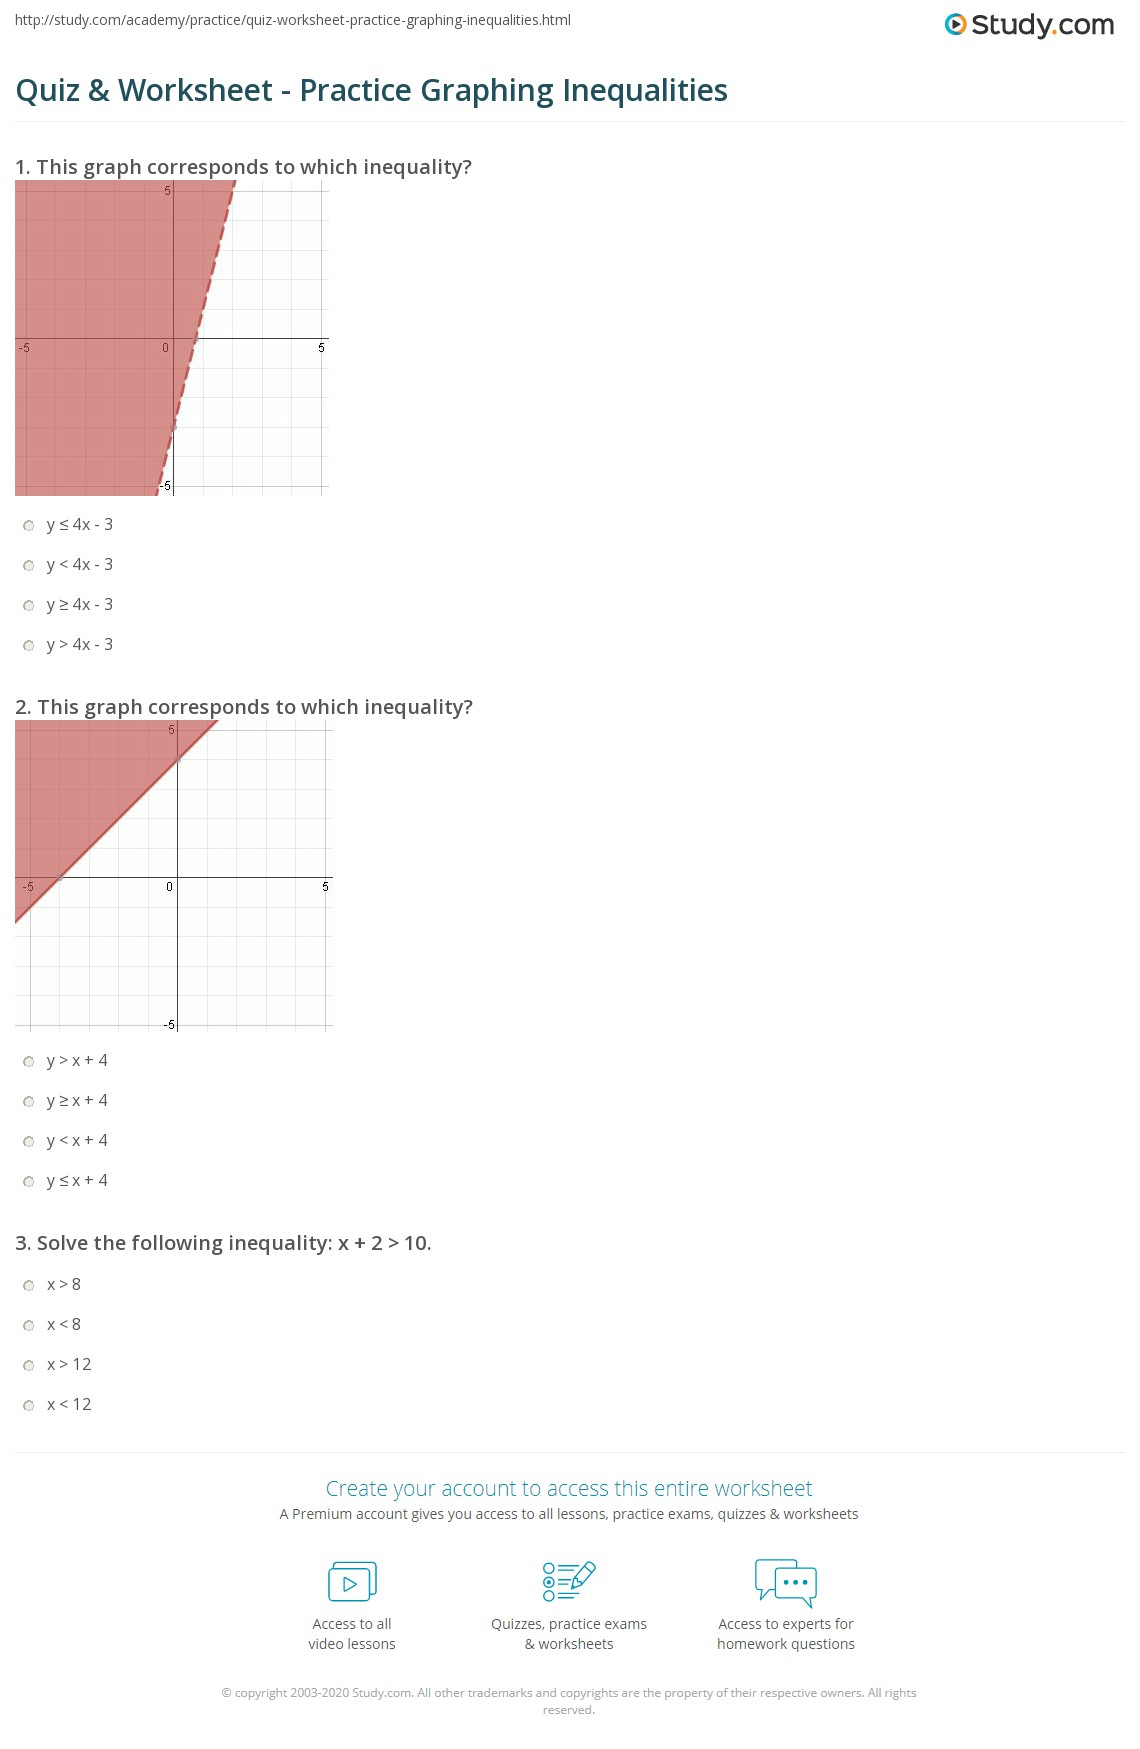 Quiz Worksheet Practice Graphing Inequalities Study